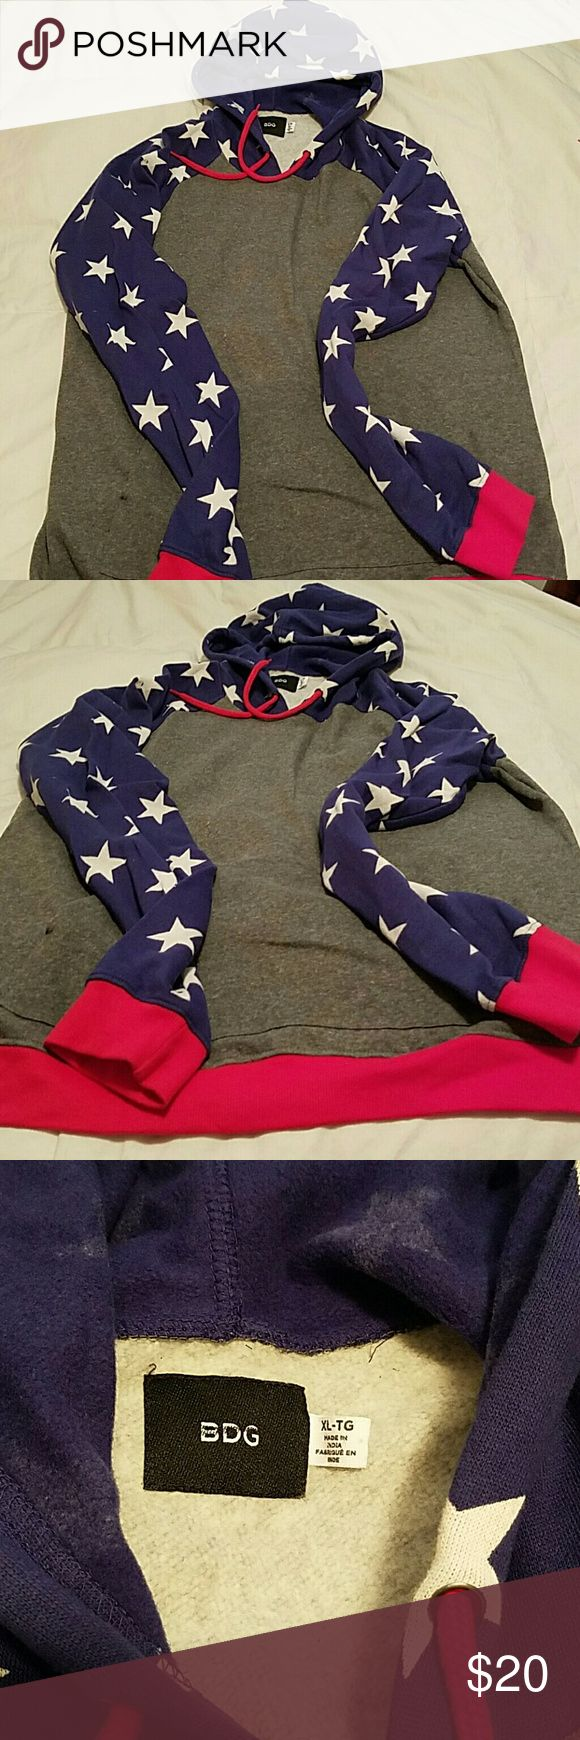 Urban Outfitters BDG hoodie Men's XL. Never worn. Urban Outfitters Jackets & Coats